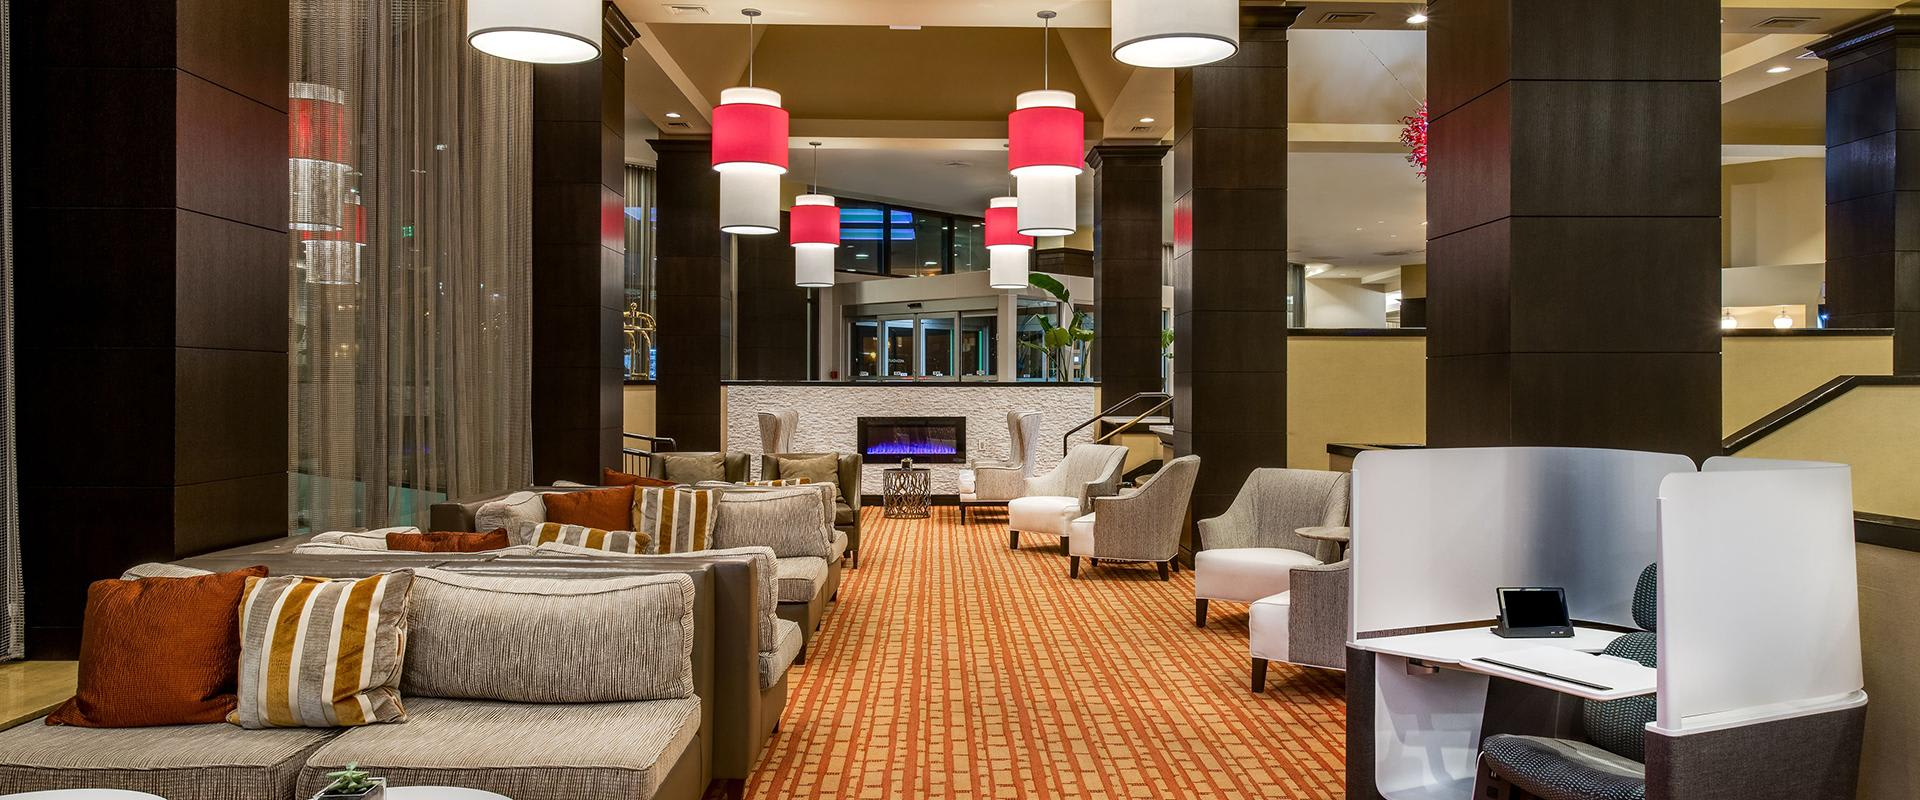 White Plains Hotel Lobby Seating